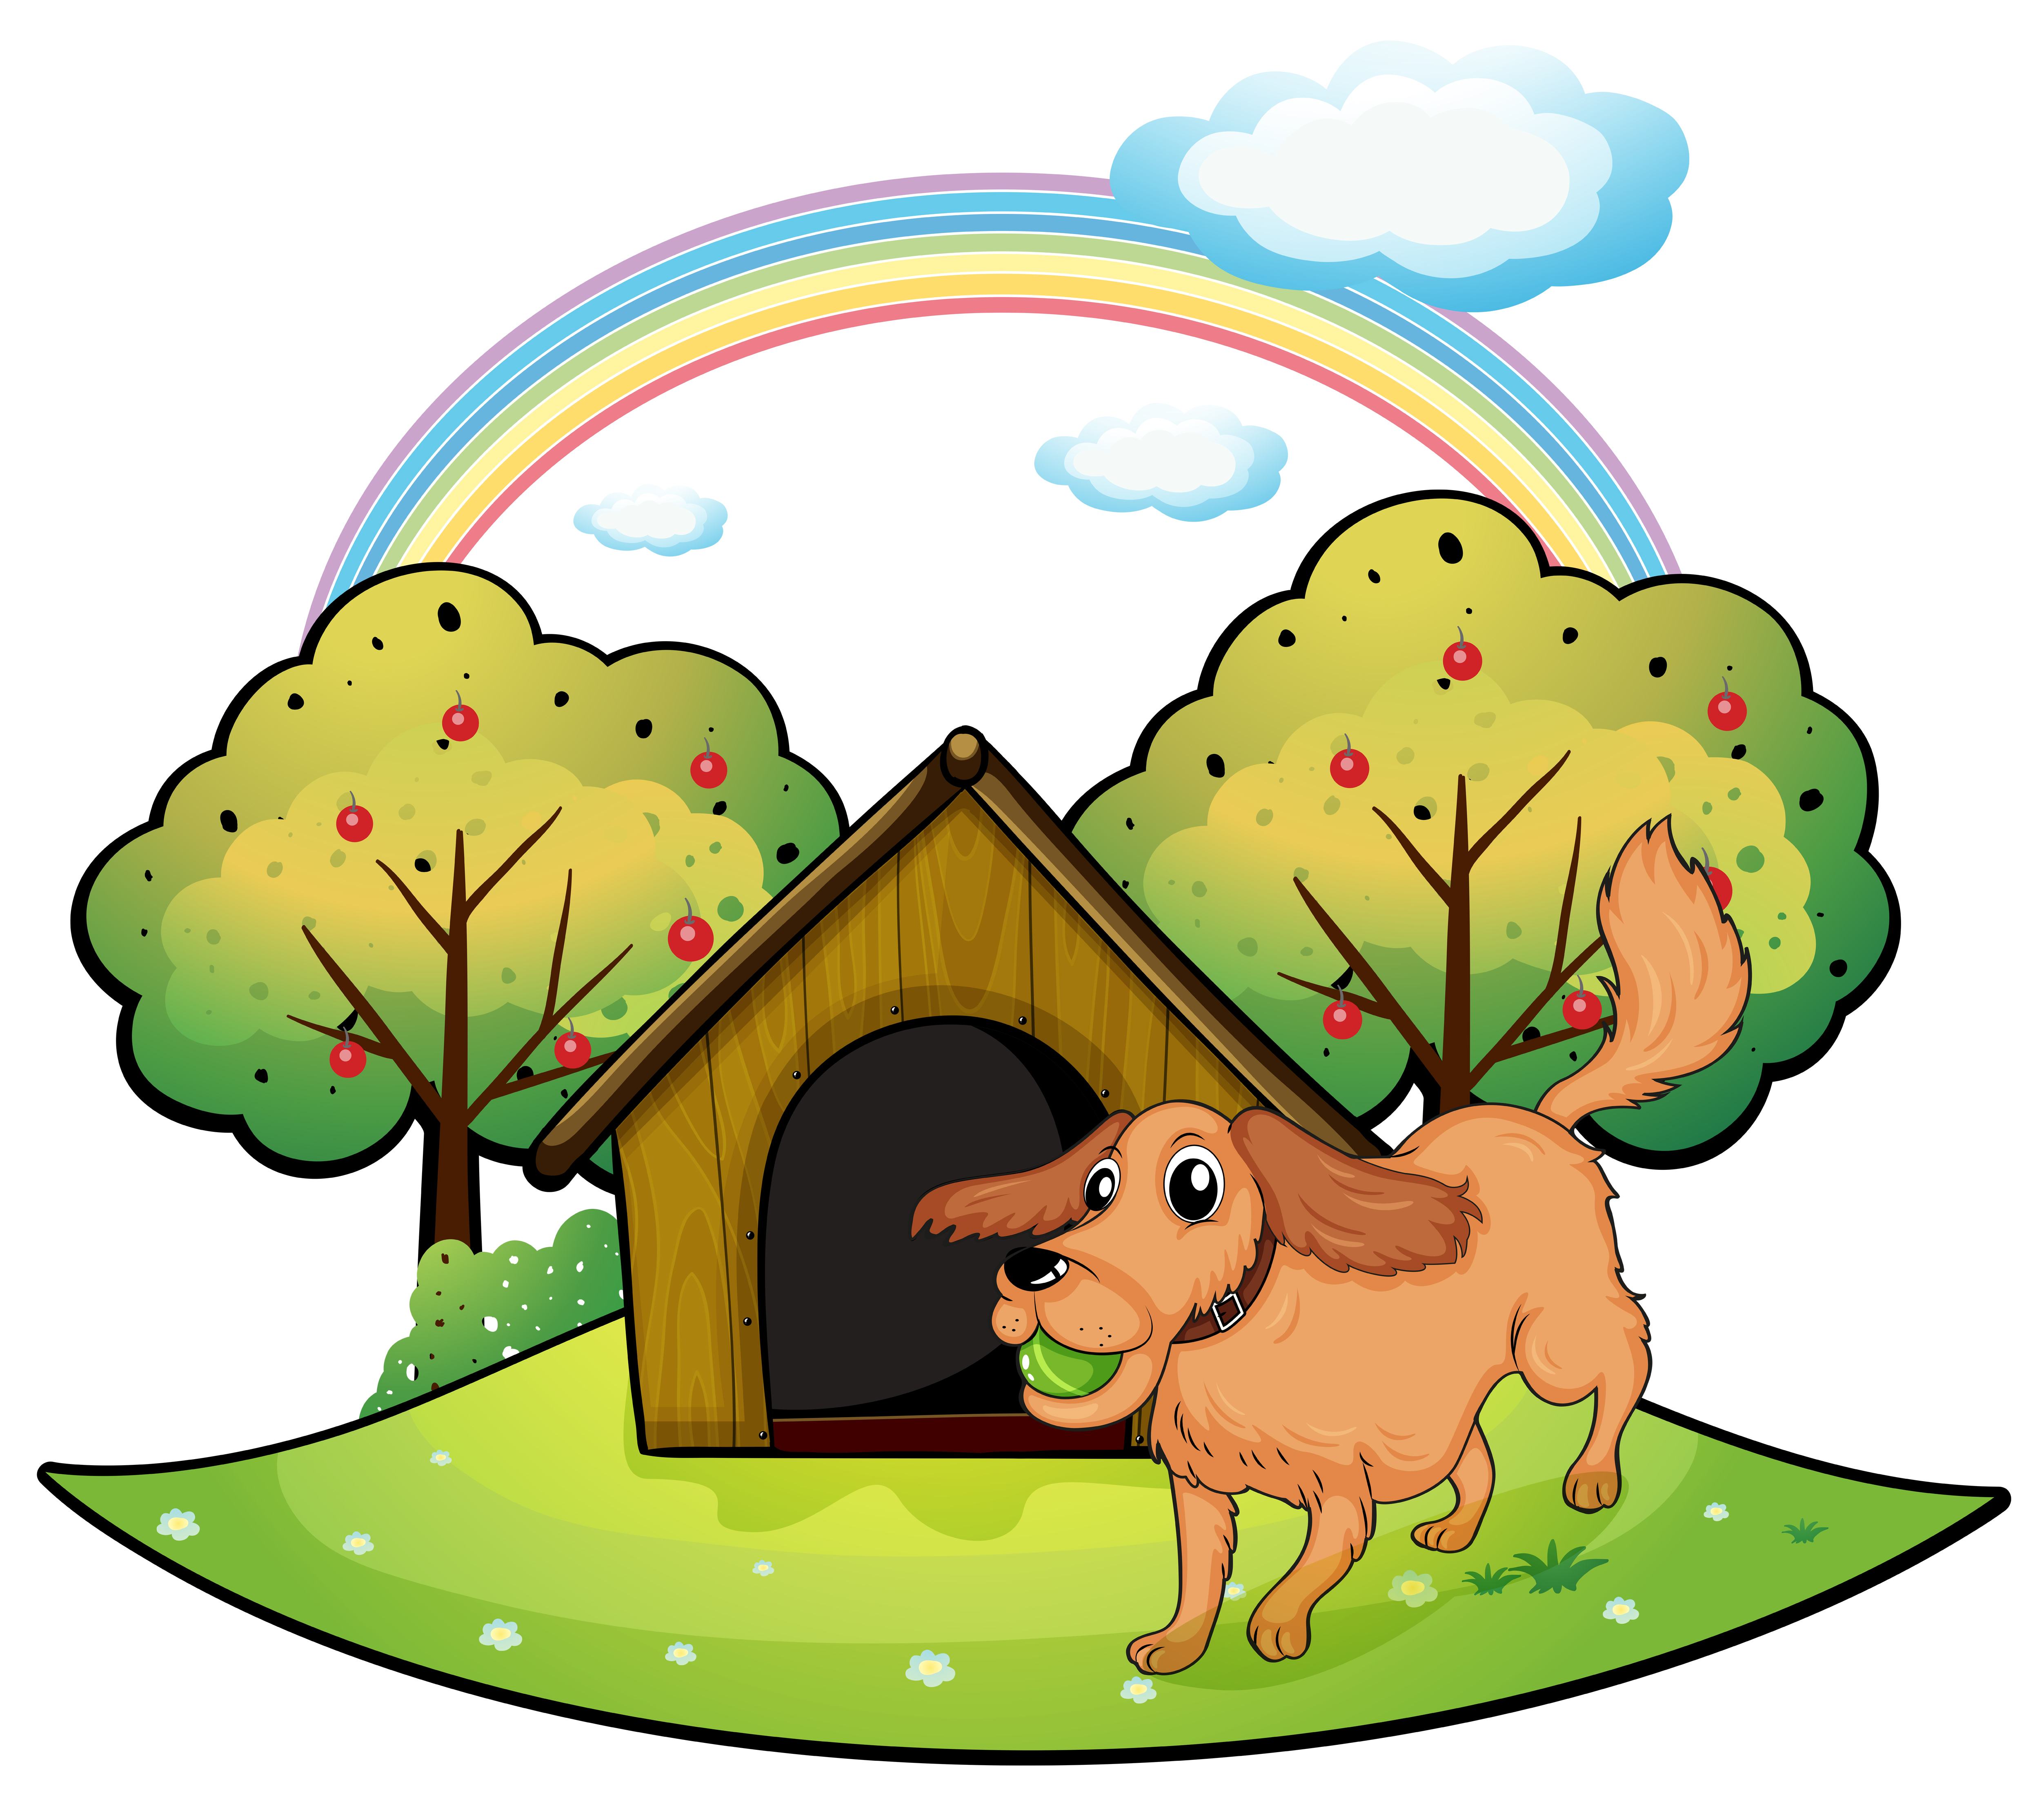 A Dog Playing Outside The Doghouse Near The Apple Tree Download Free Vectors Clipart Graphics Vector Art Find images of cartoon tree. vecteezy